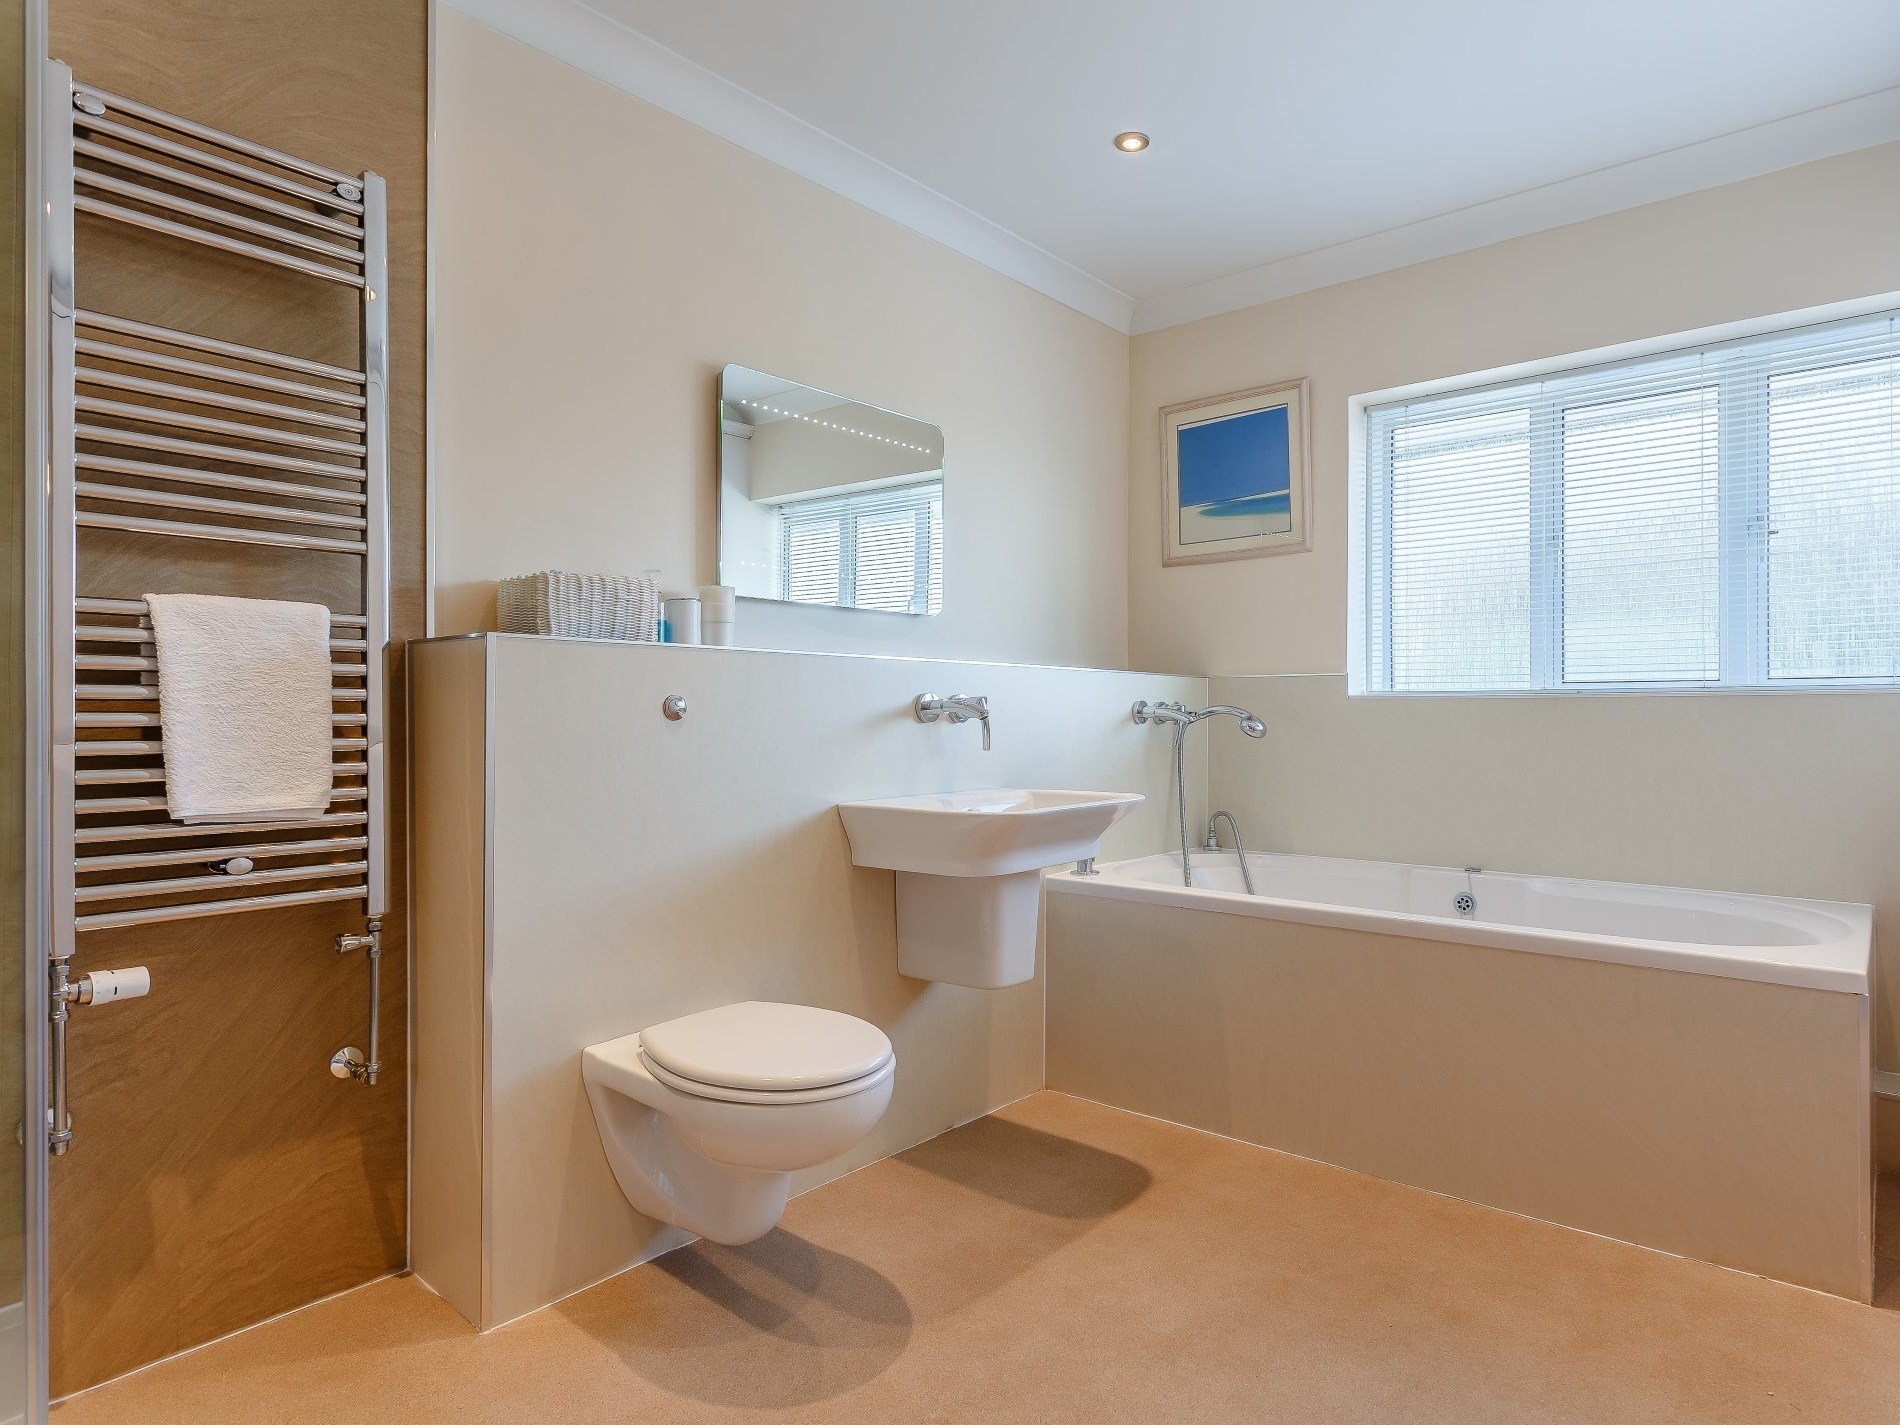 5 Bedroom Cottage in Minehead, Dorset and Somerset